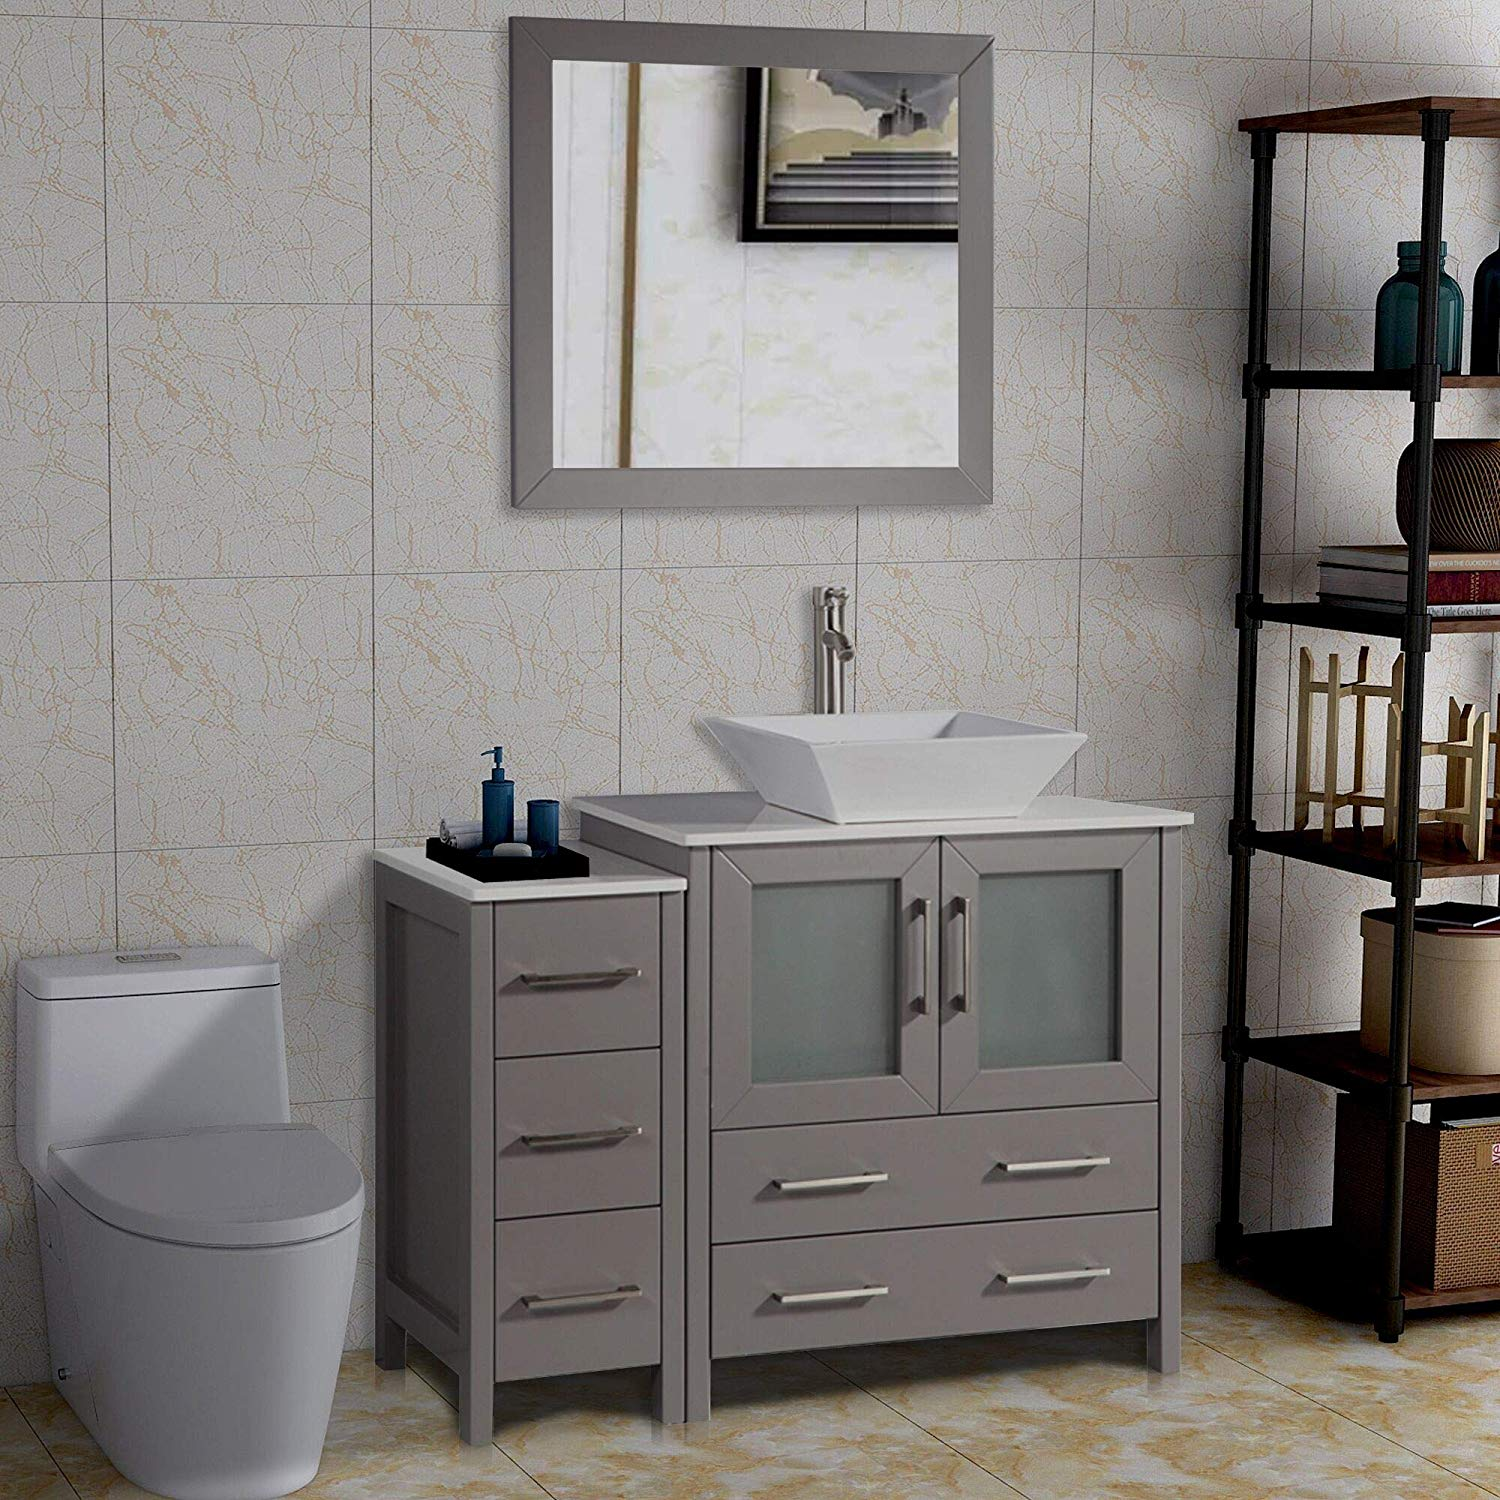 Vanity Art 42-Inch Single Sink Bathroom Vanity Set Modern & Slim 5-Drawer White Quartz Top 2 ...